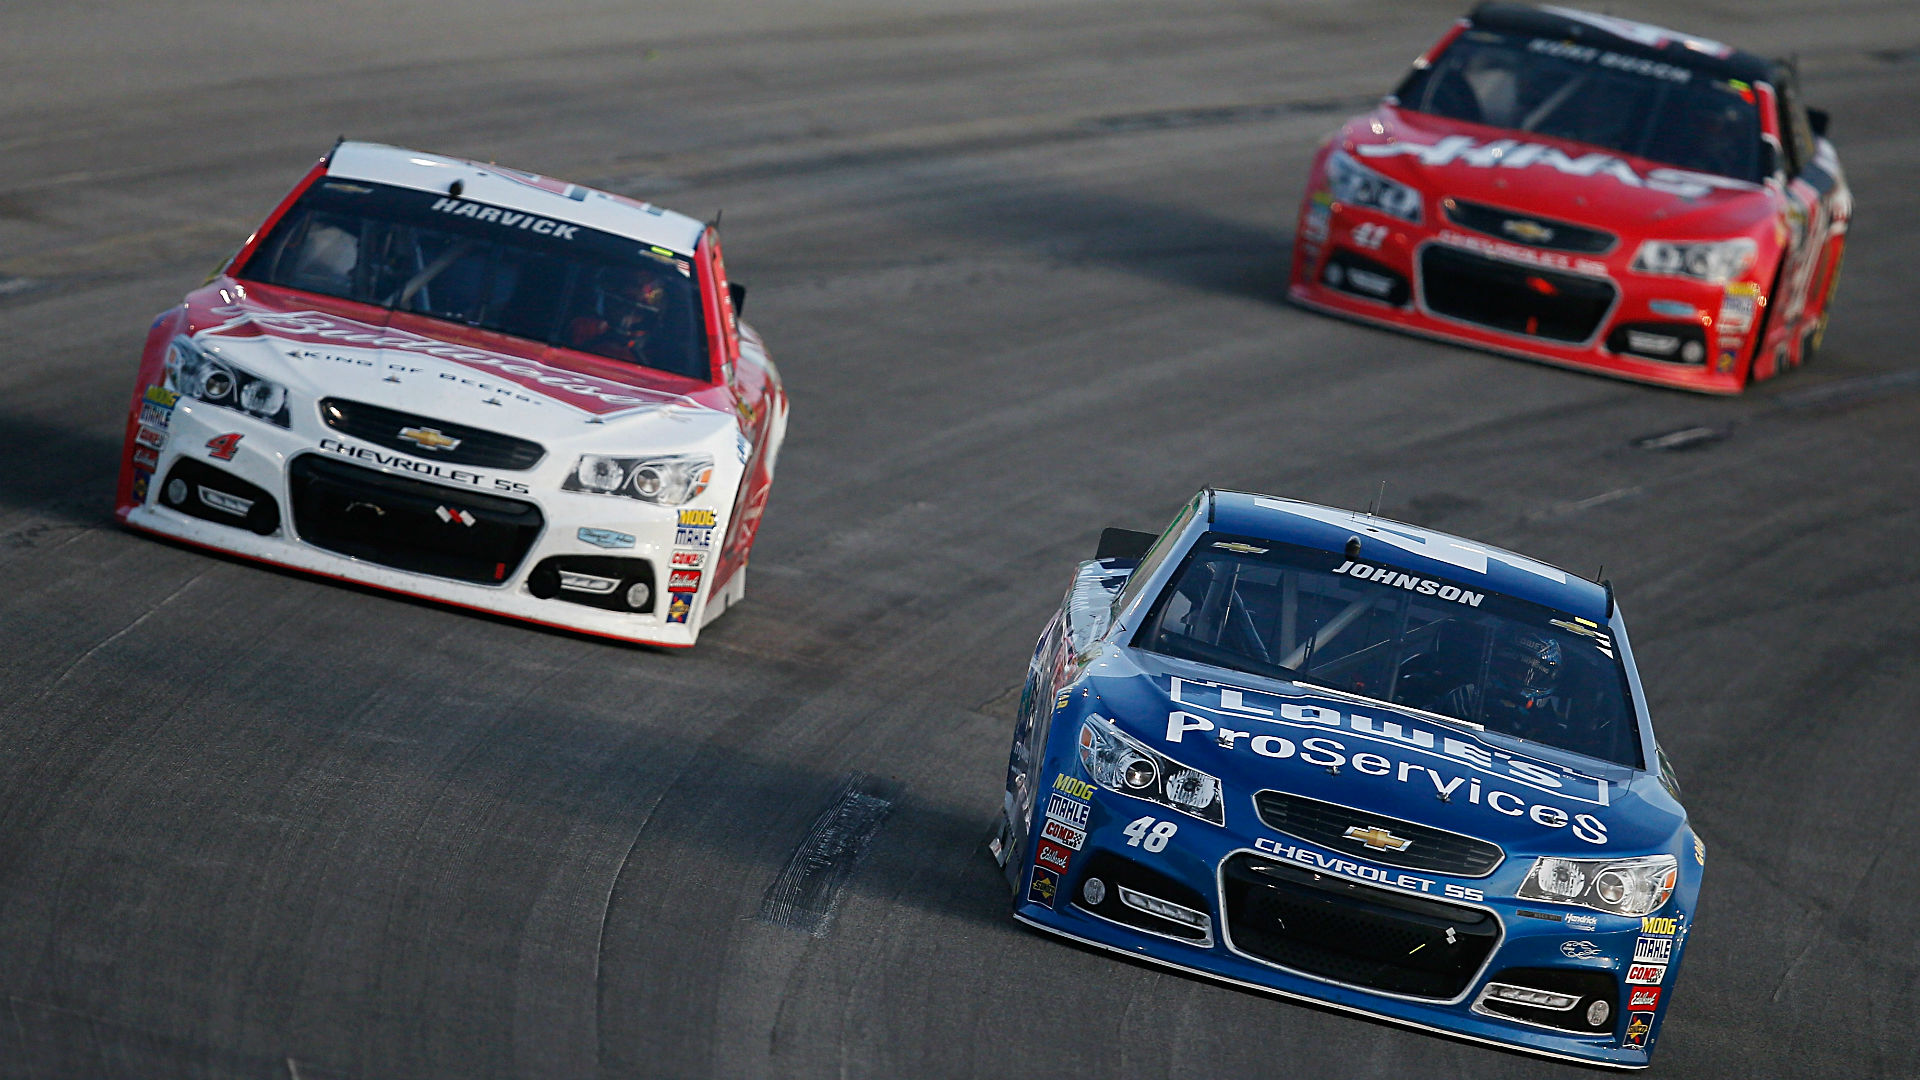 NASCAR odds and betting preview — Chevy dominance at Indy puts Harvick, Johnson on top